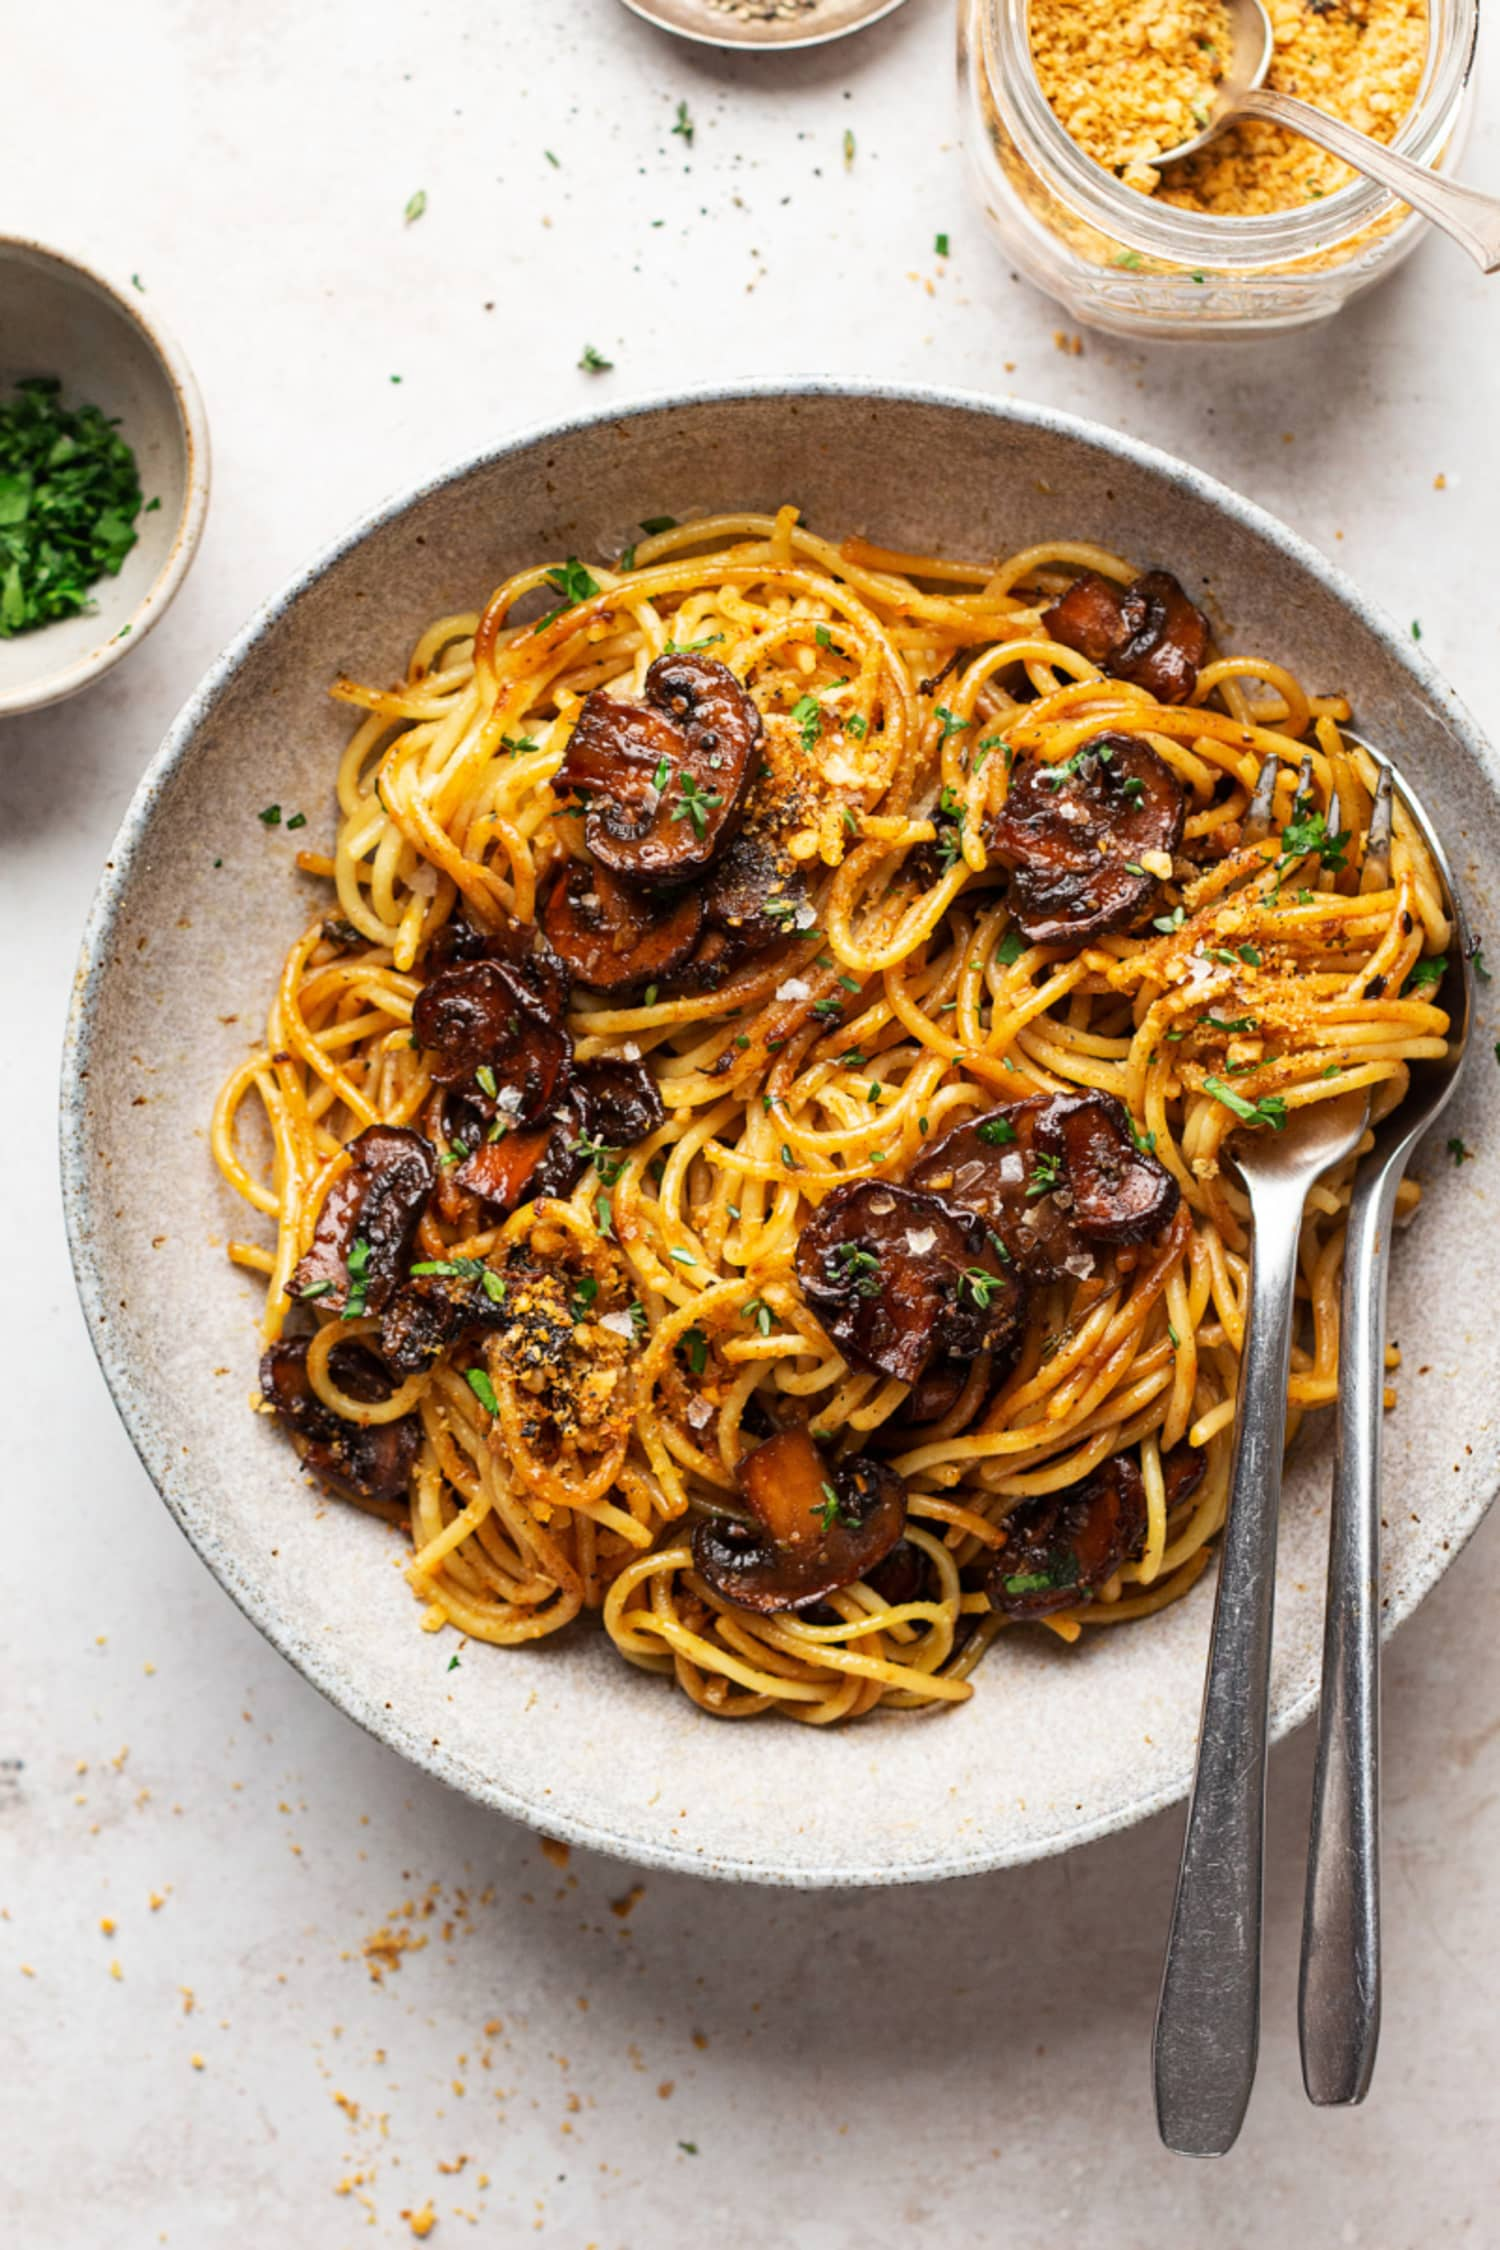 Vegan Balsamic Mushroom Pasta Is a Masterclass in Flavor